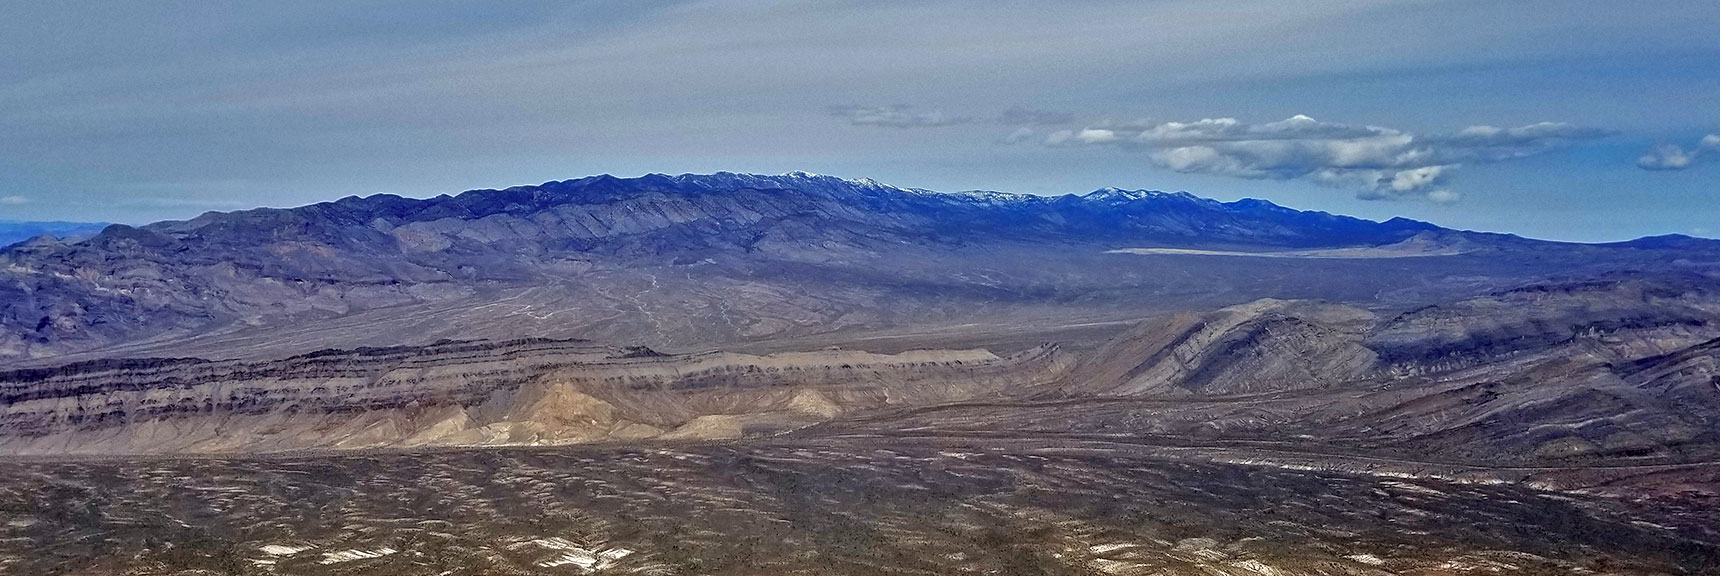 View of the Sheep Range from Gass Peak Eastern Summit | Gass Peak Eastern Summit Ultra-marathon Adventure, Nevada